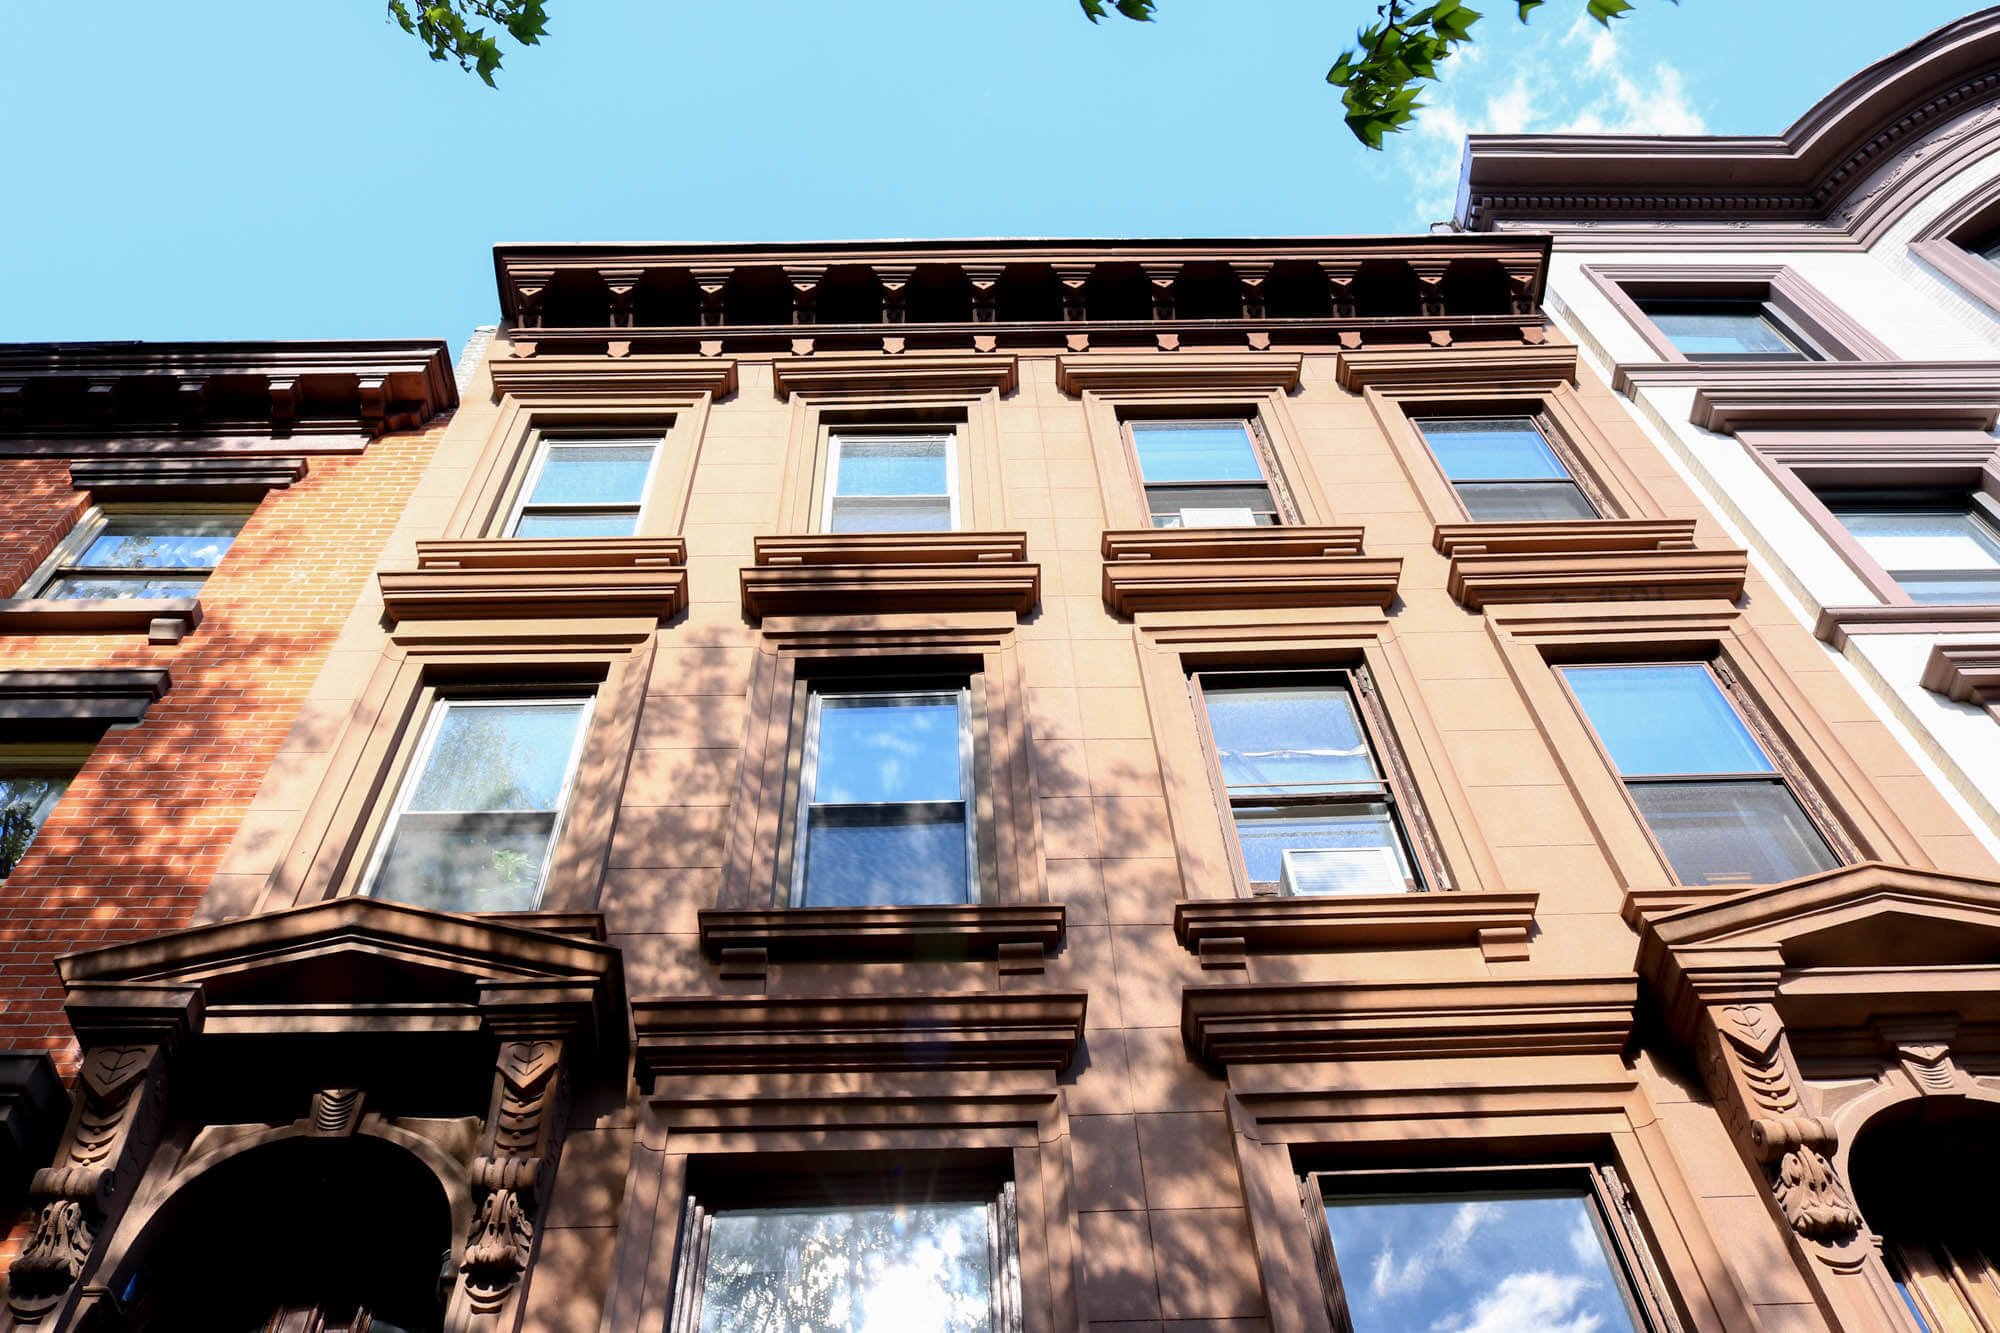 Formal Renderings of 8 Palmetto Street, Brooklyn Released by GF55 Architects